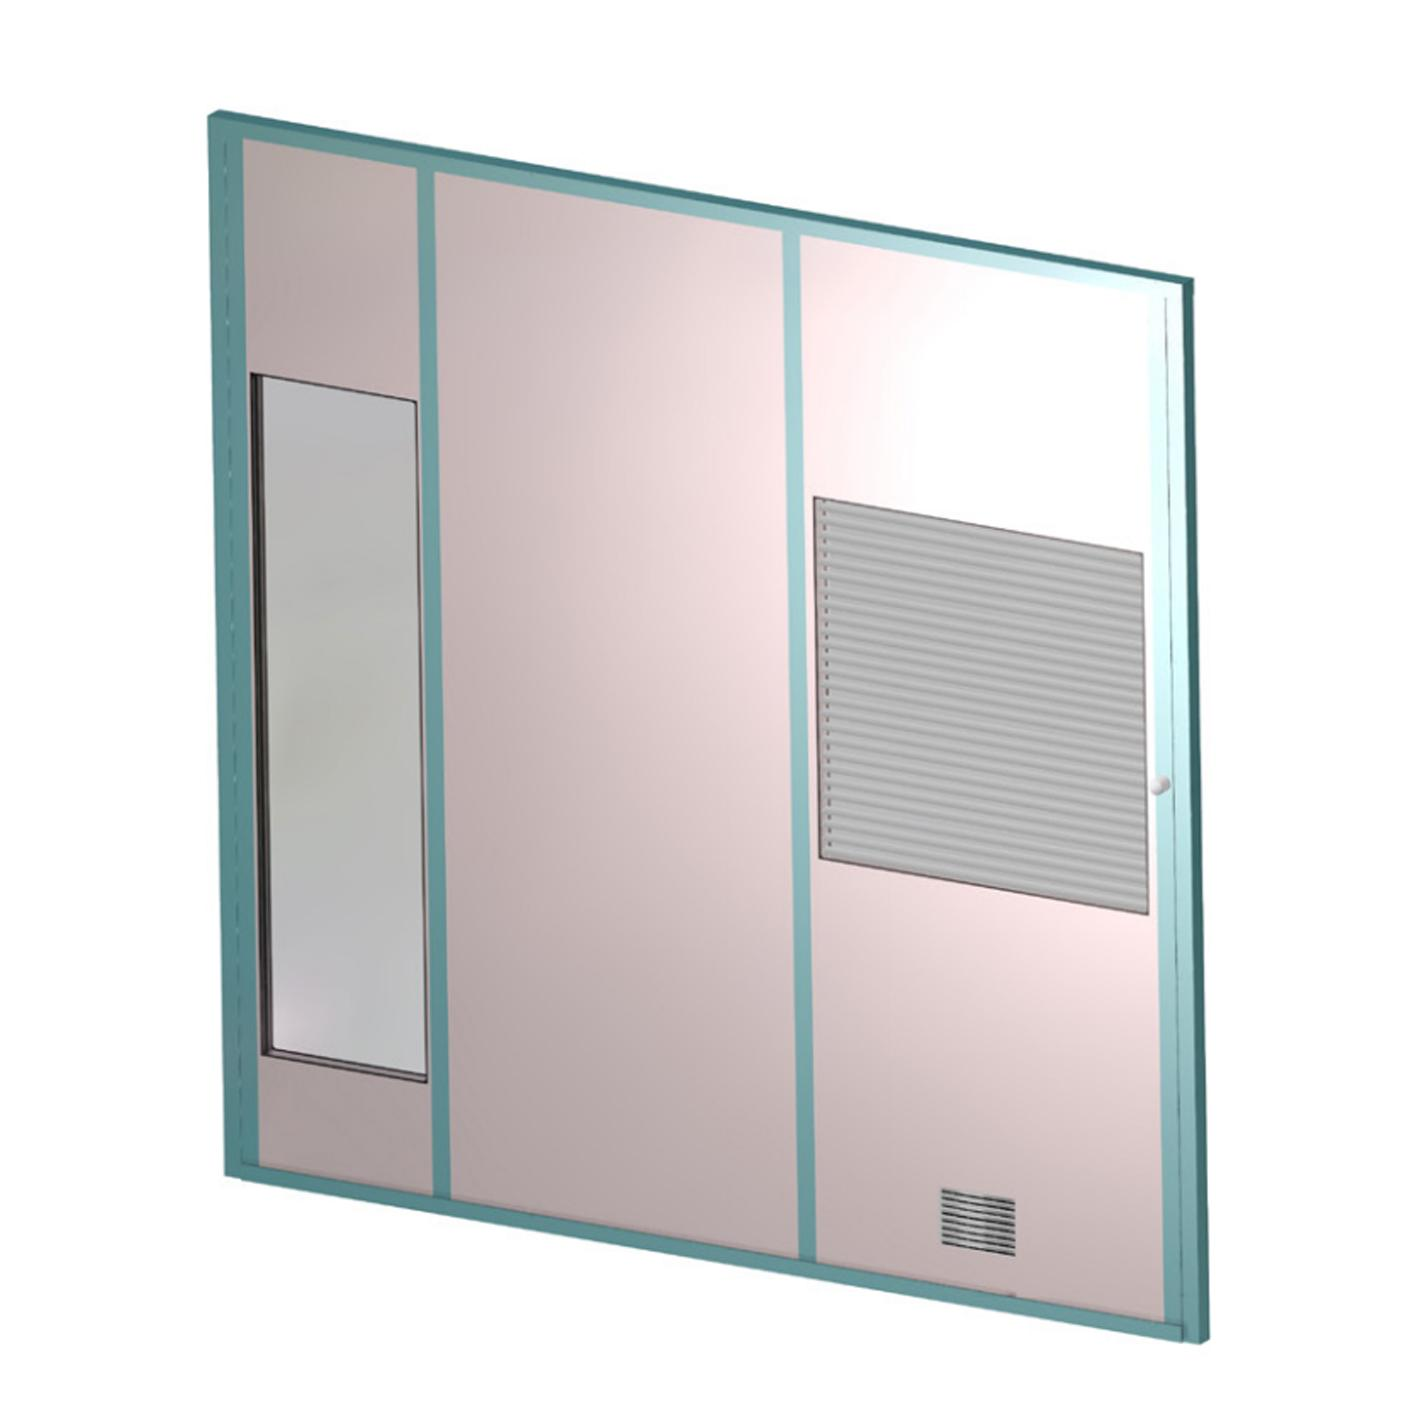 Commercial partitioning, Titan panels